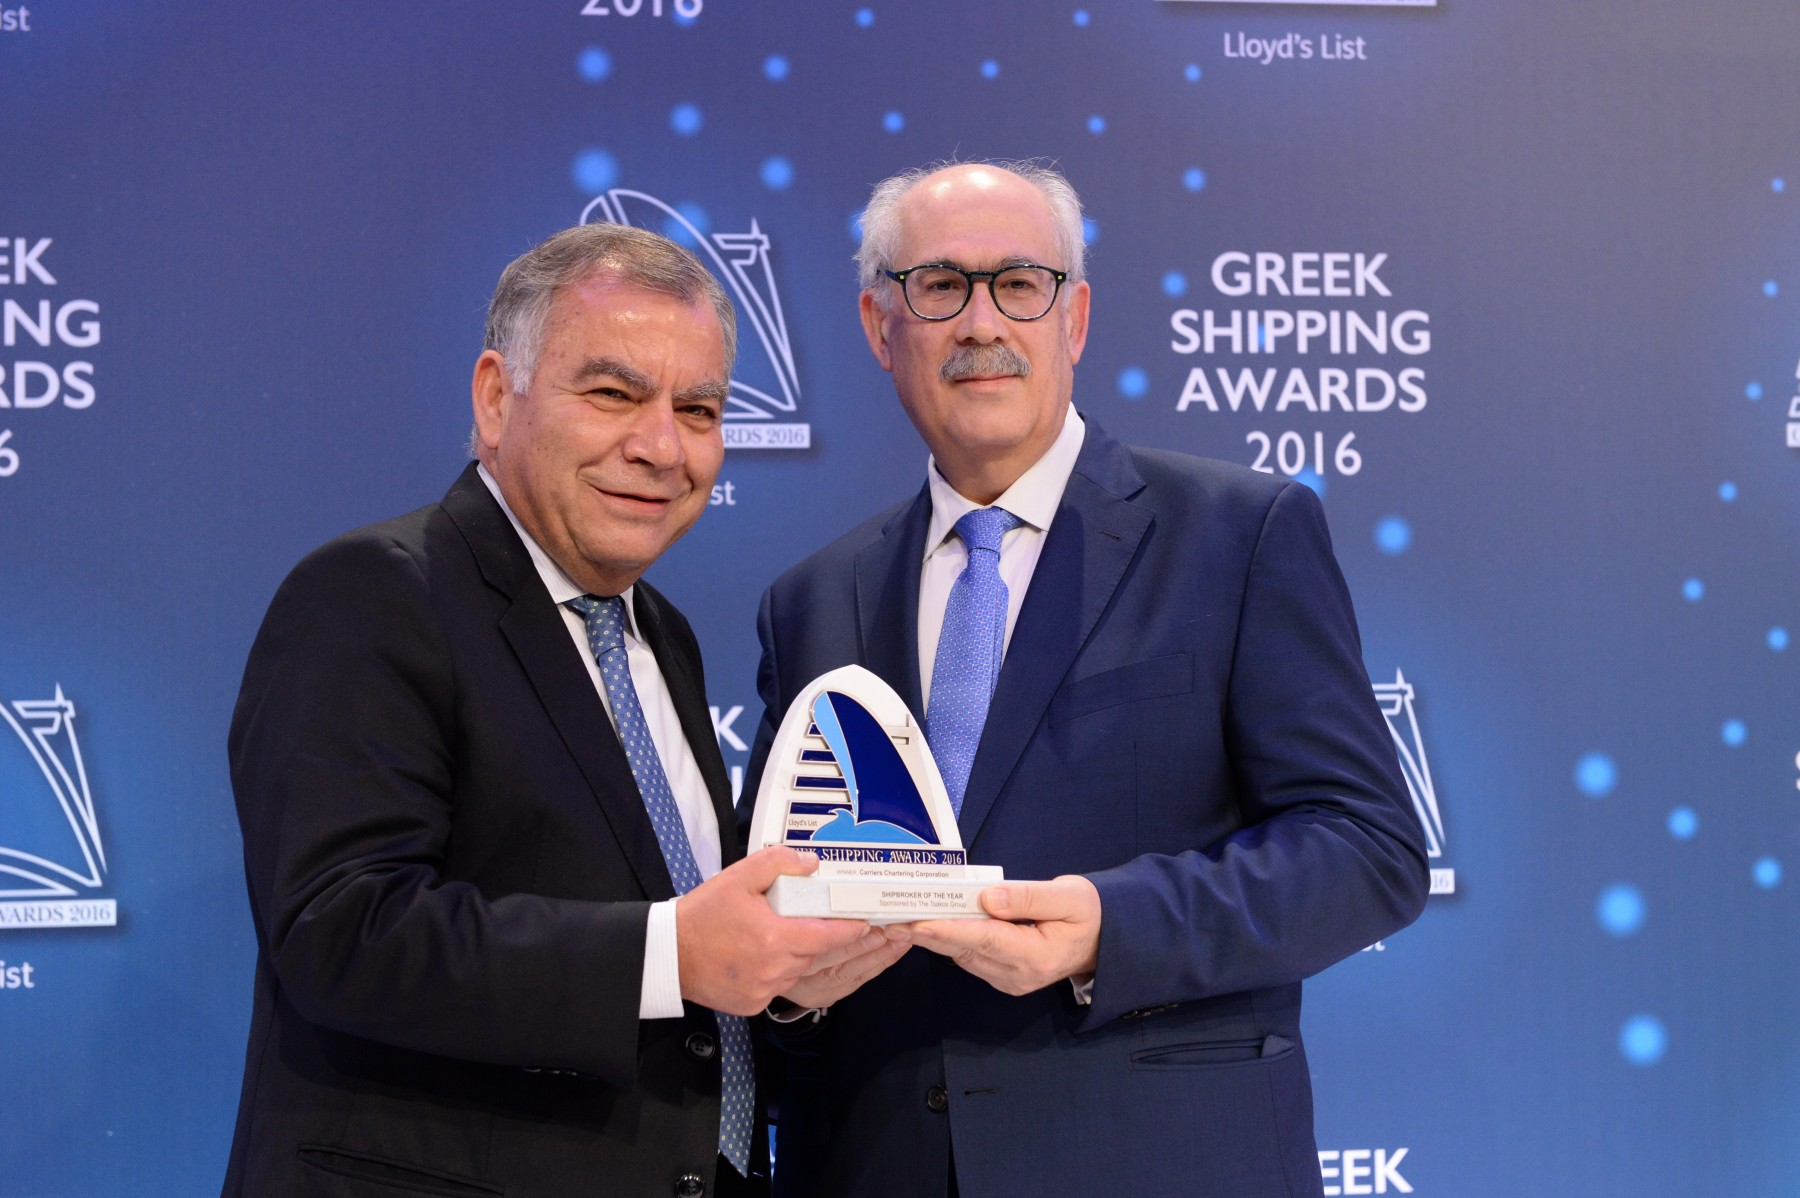 Mr. Takis Christofides of Carriers Chartering Corporation accepting the Shipbroker of the Year Award from Mr. Harry Hajimichael of sponsor The Tsakos Group.